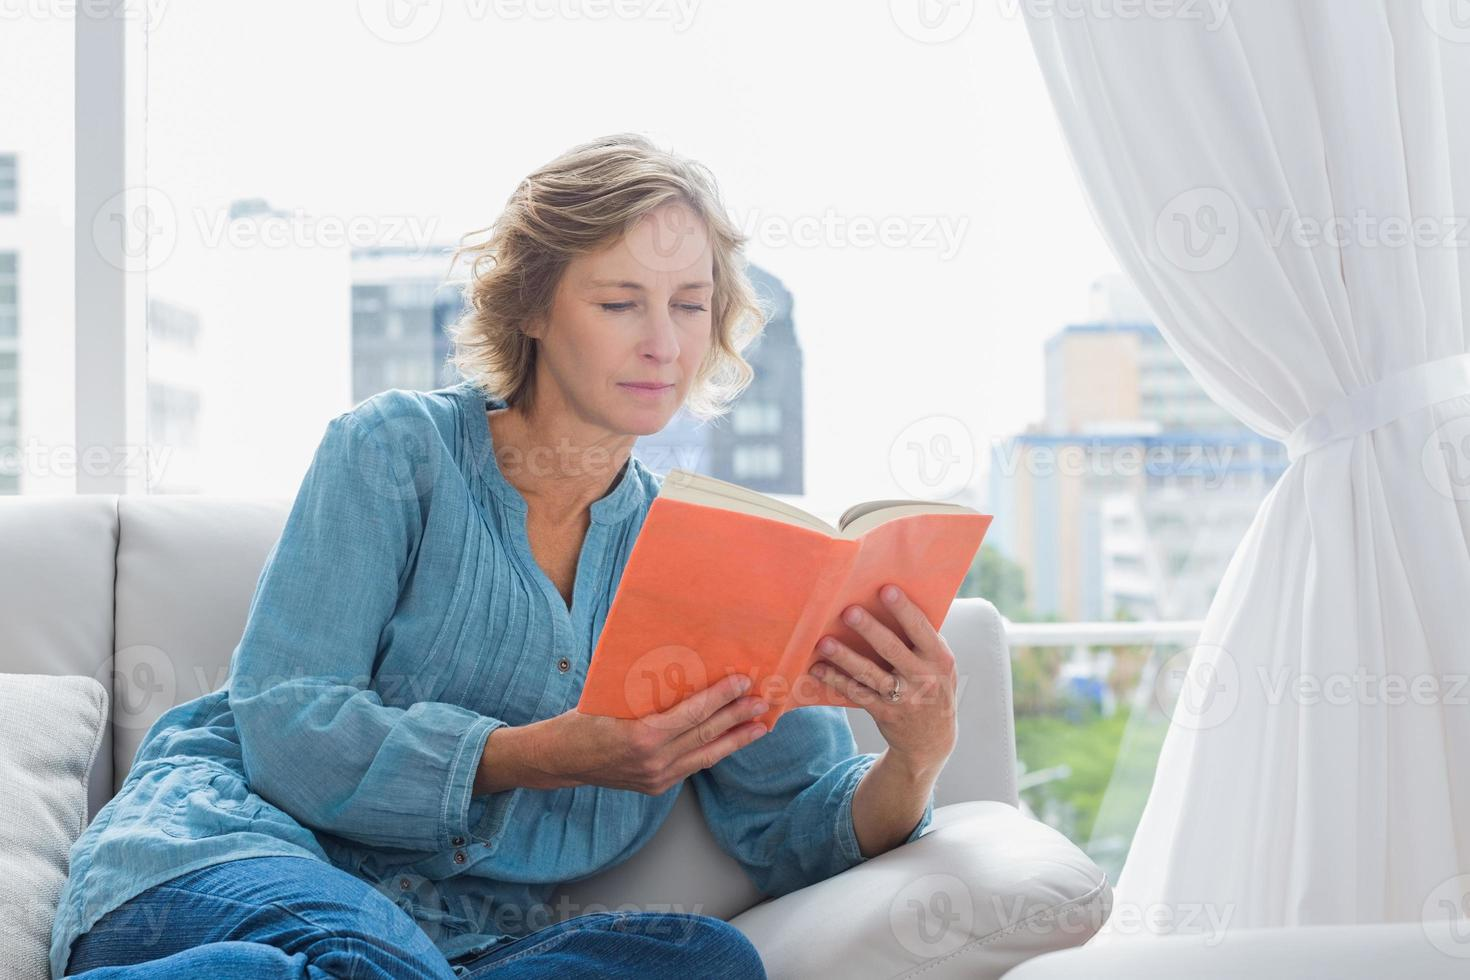 Cheerful blonde woman sitting on her couch reading a book photo